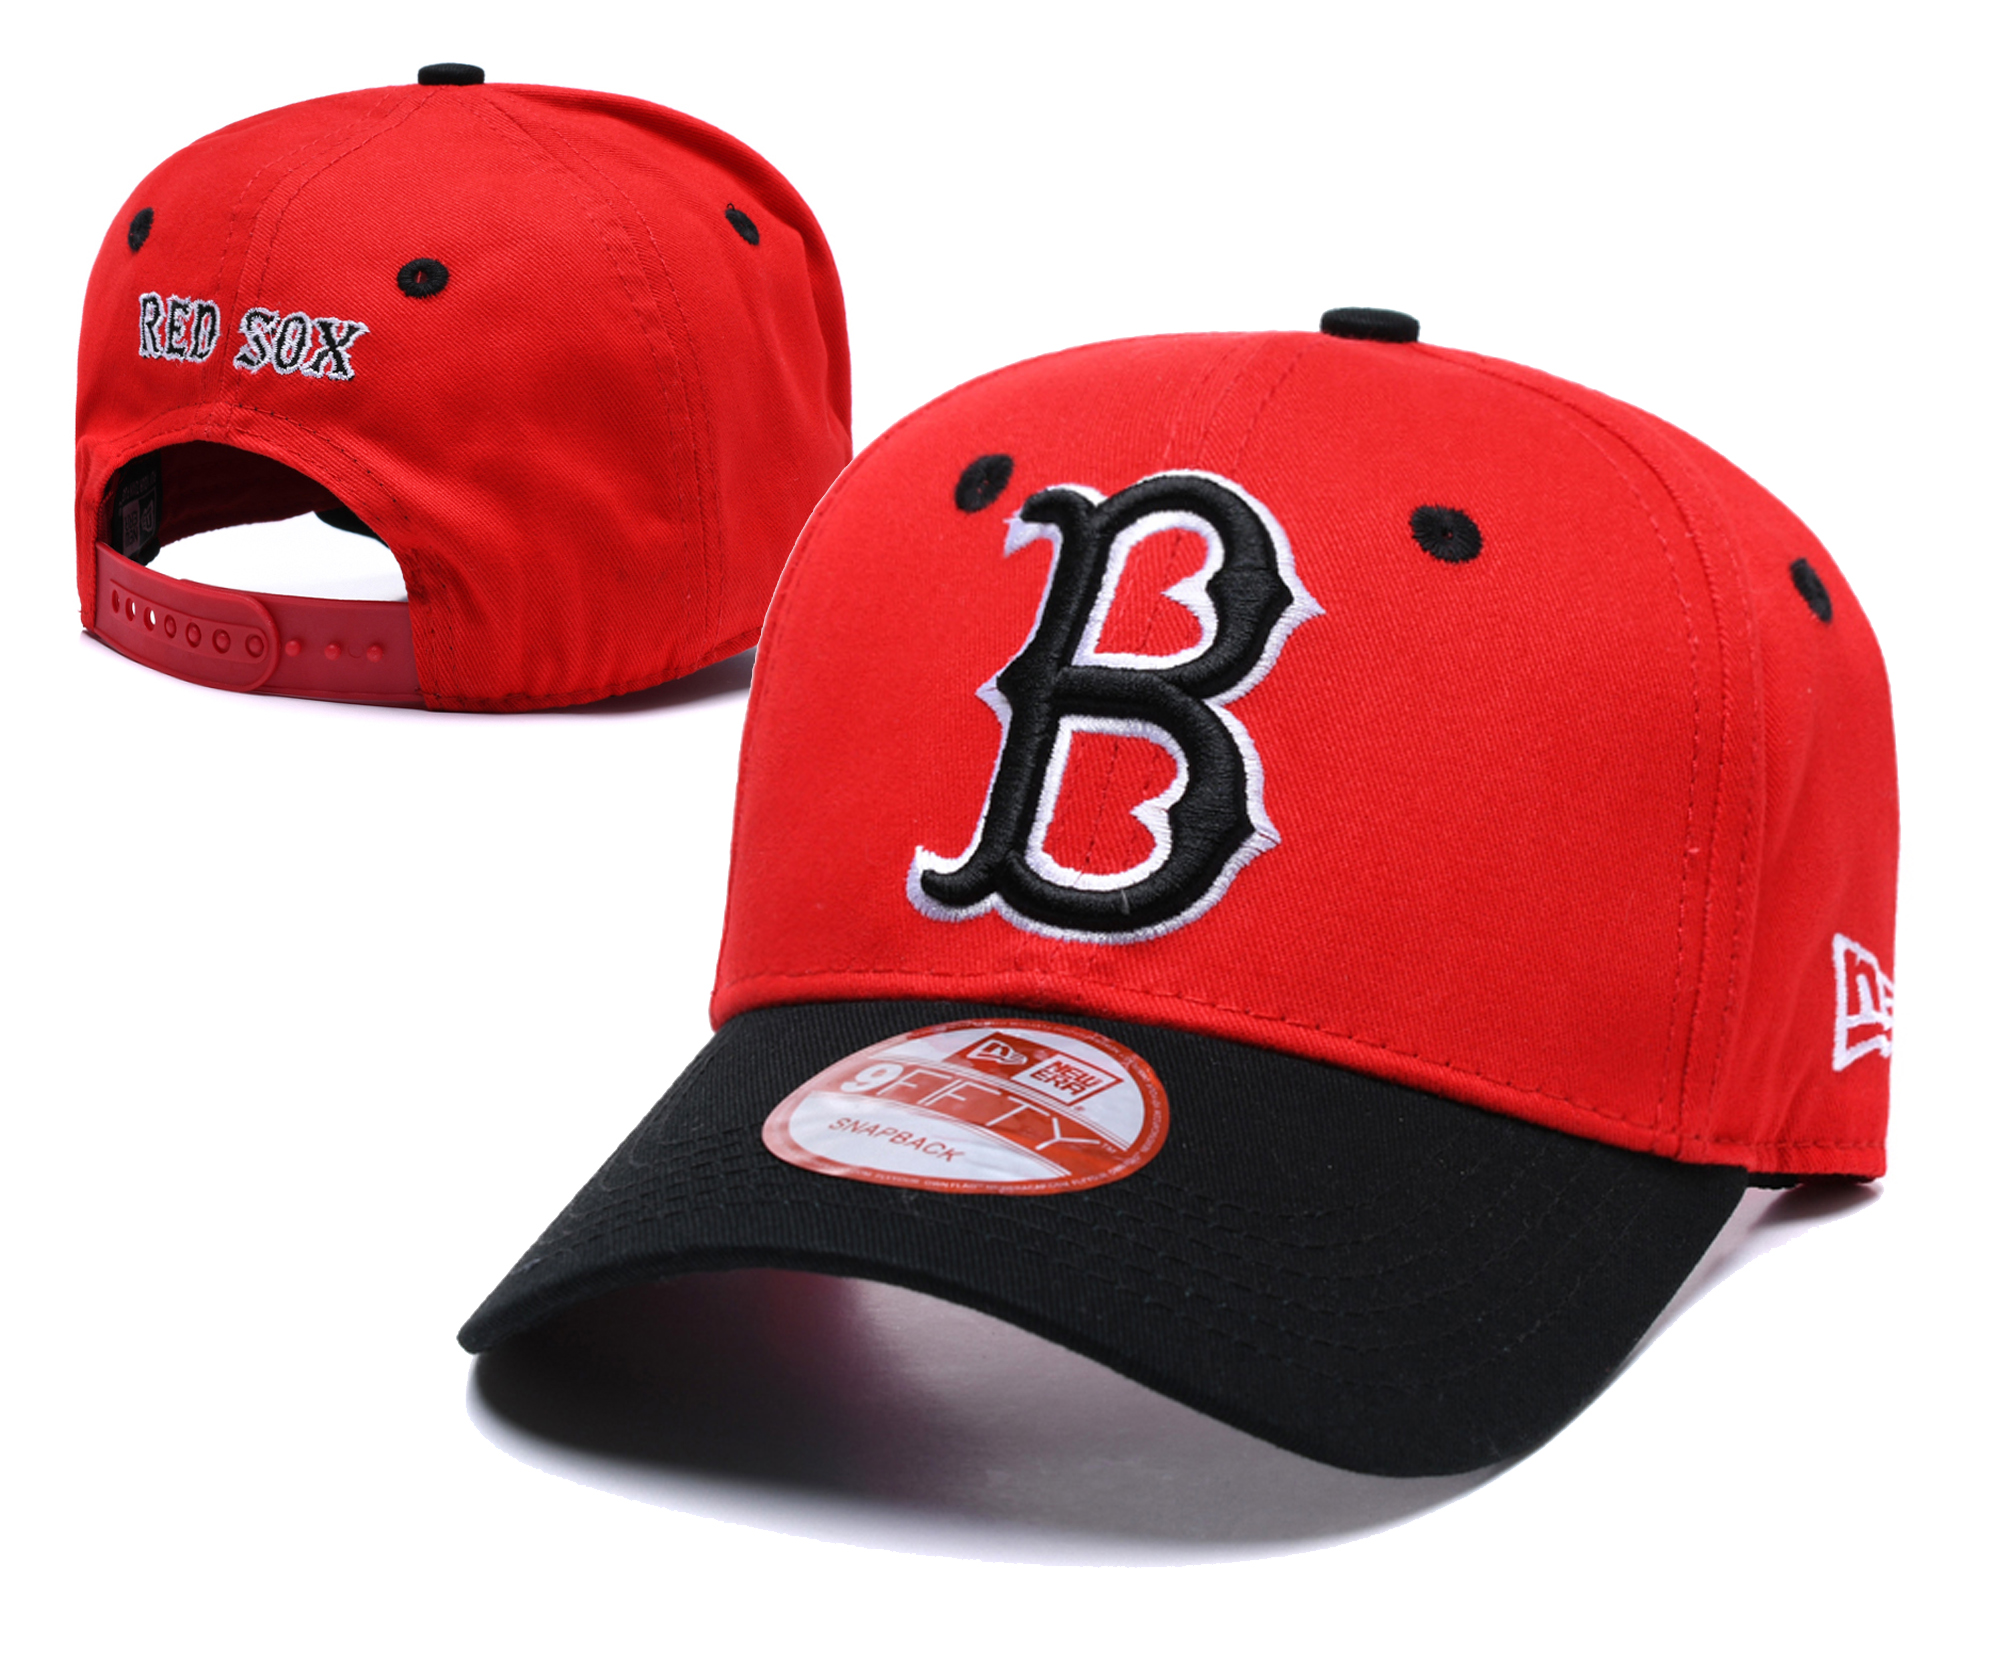 Red Sox Fresh Logo Red Peaked Adjustable Hat TX